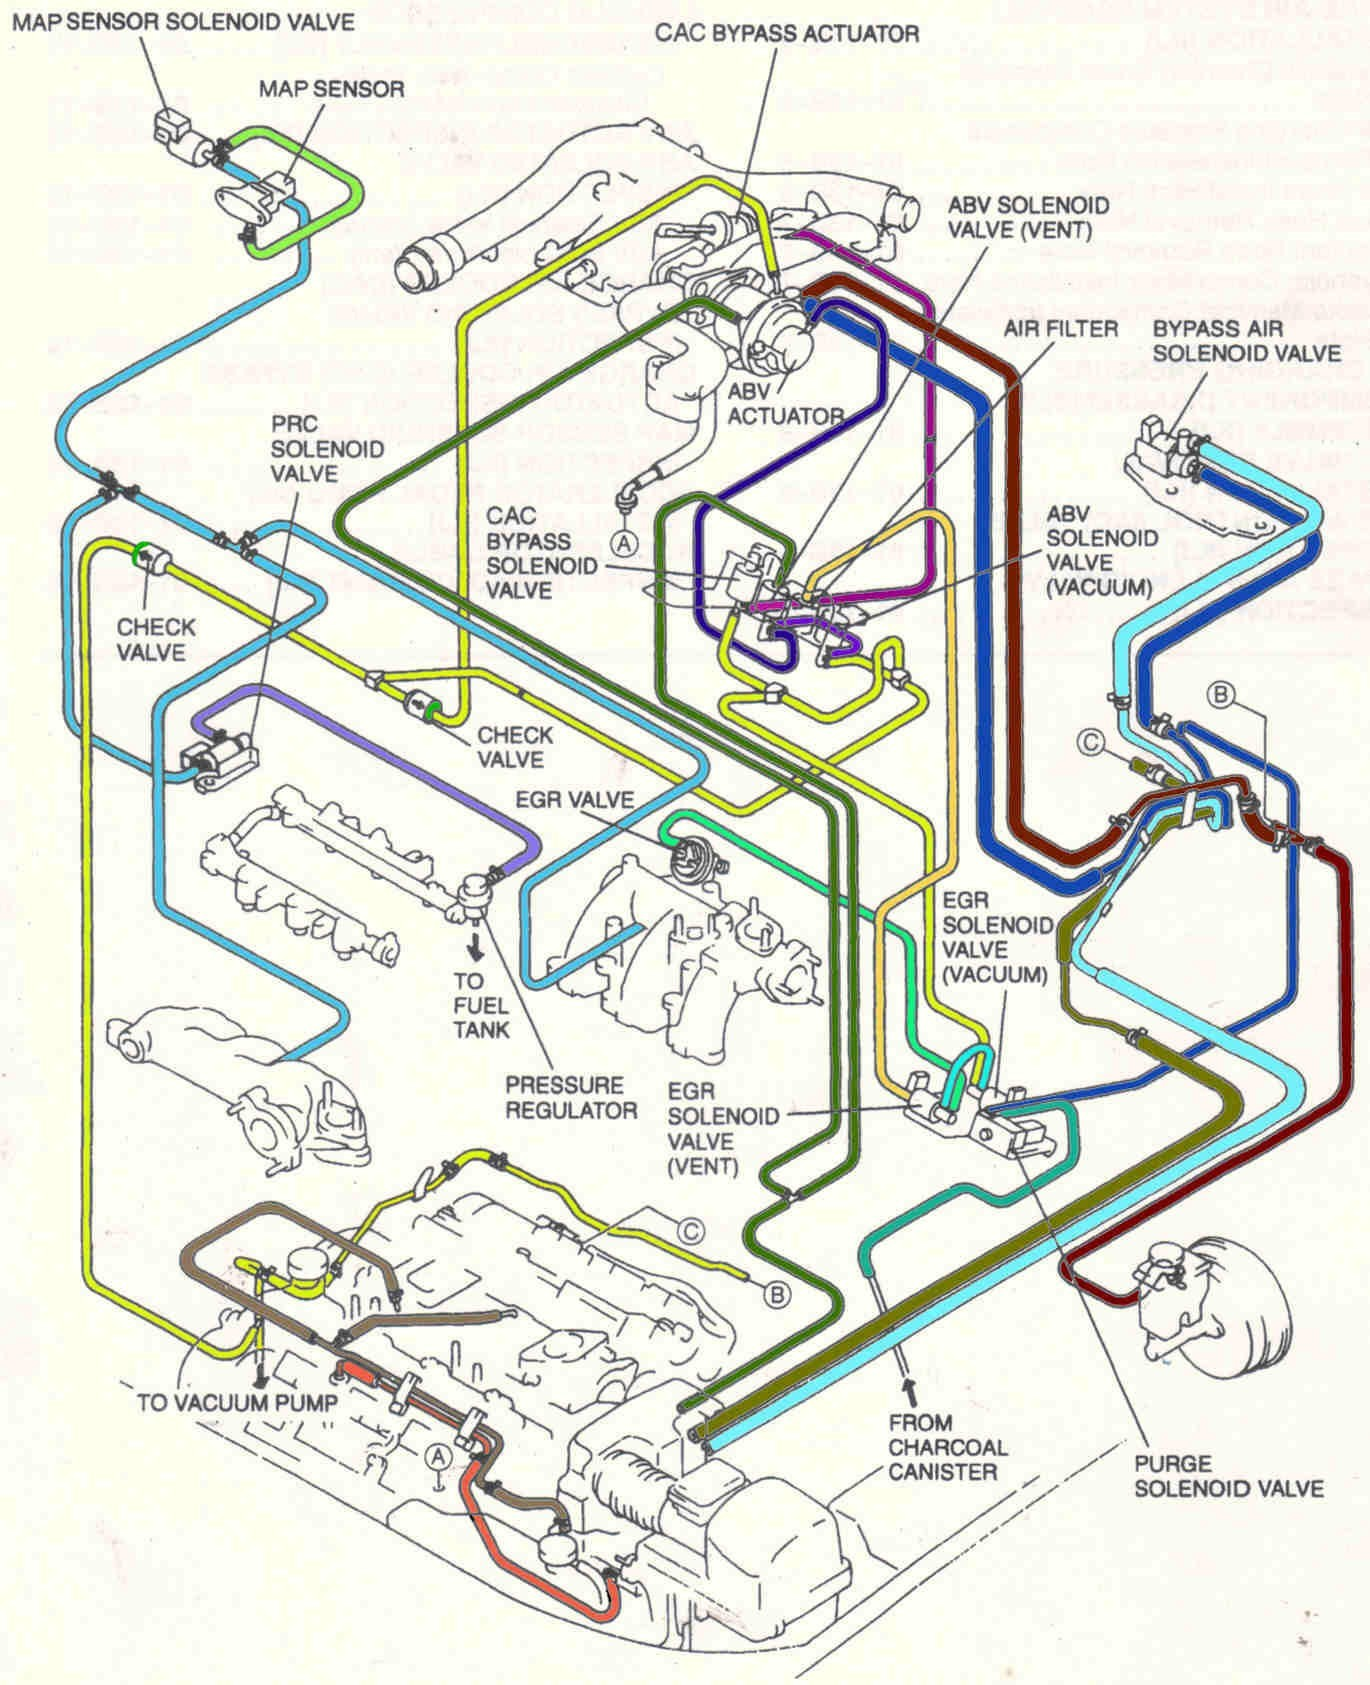 wiring diagrams mazda millenia abv general wiring diagrams 1997 Mazda B2300 Fuse Box Diagram